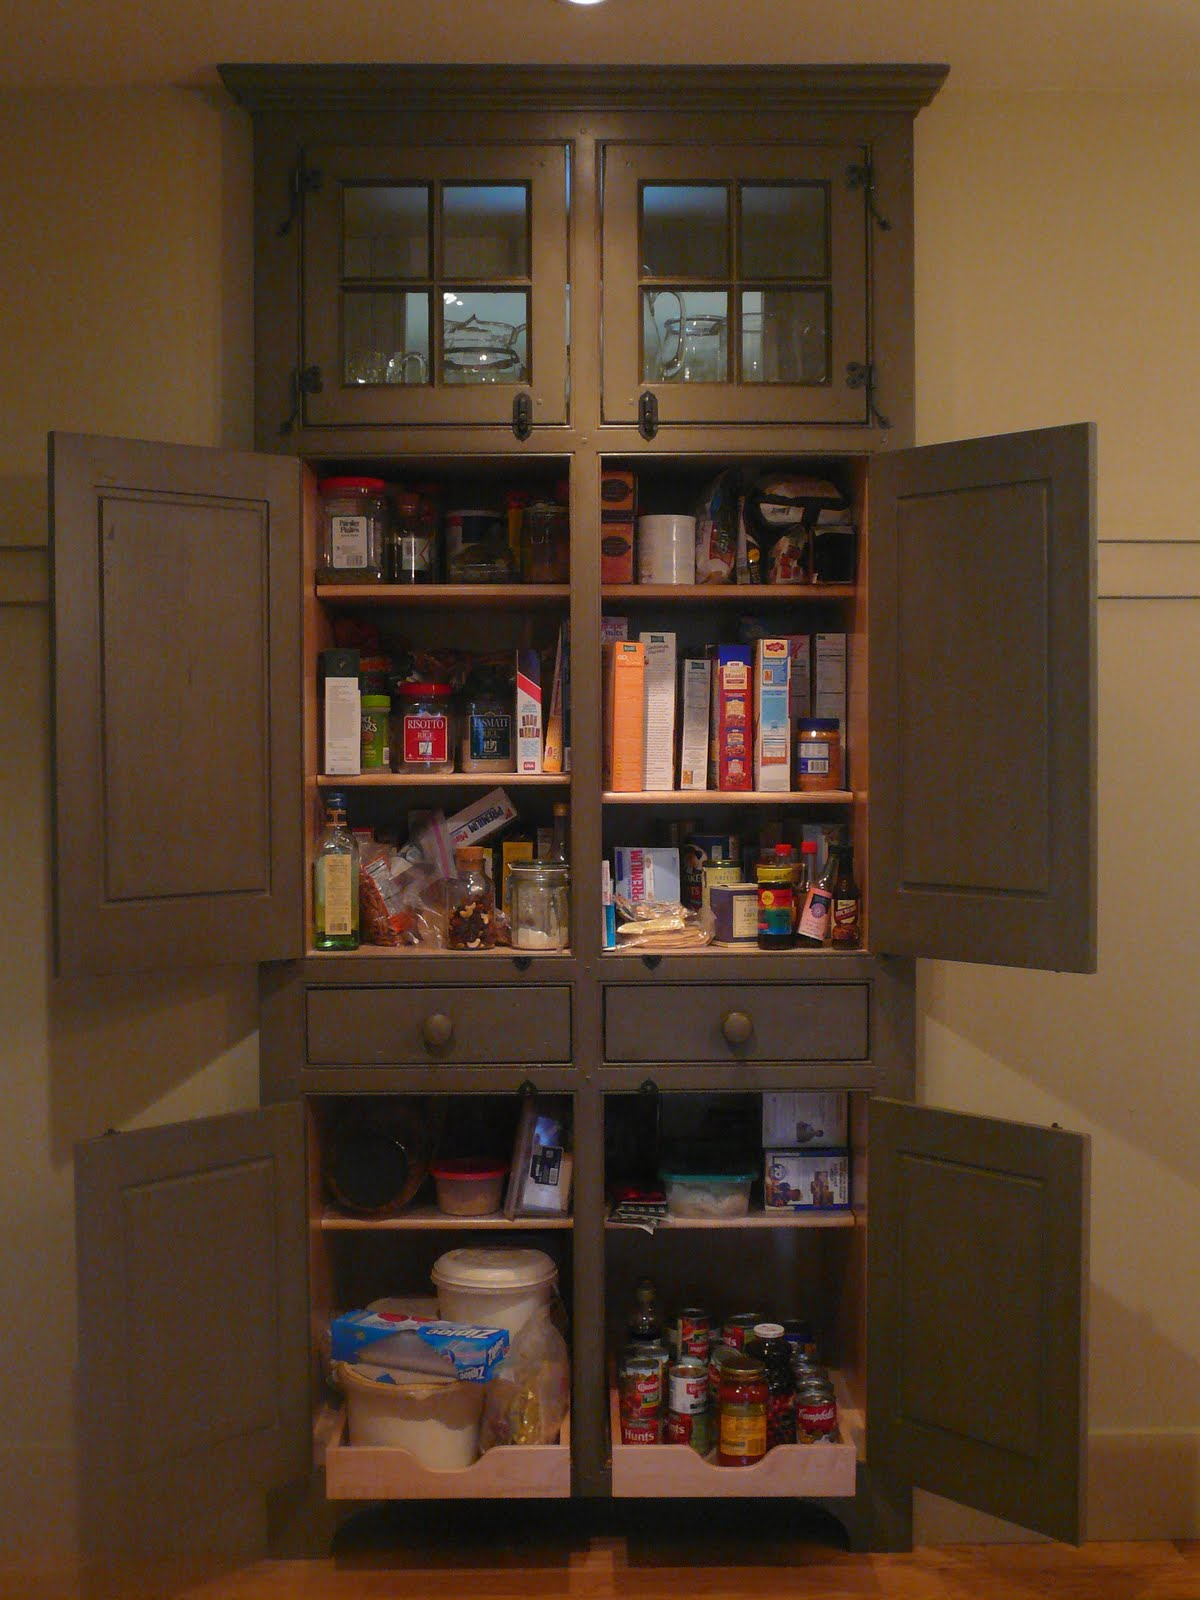 Timeless Kitchen Cabinetry Pantry Of Sorts